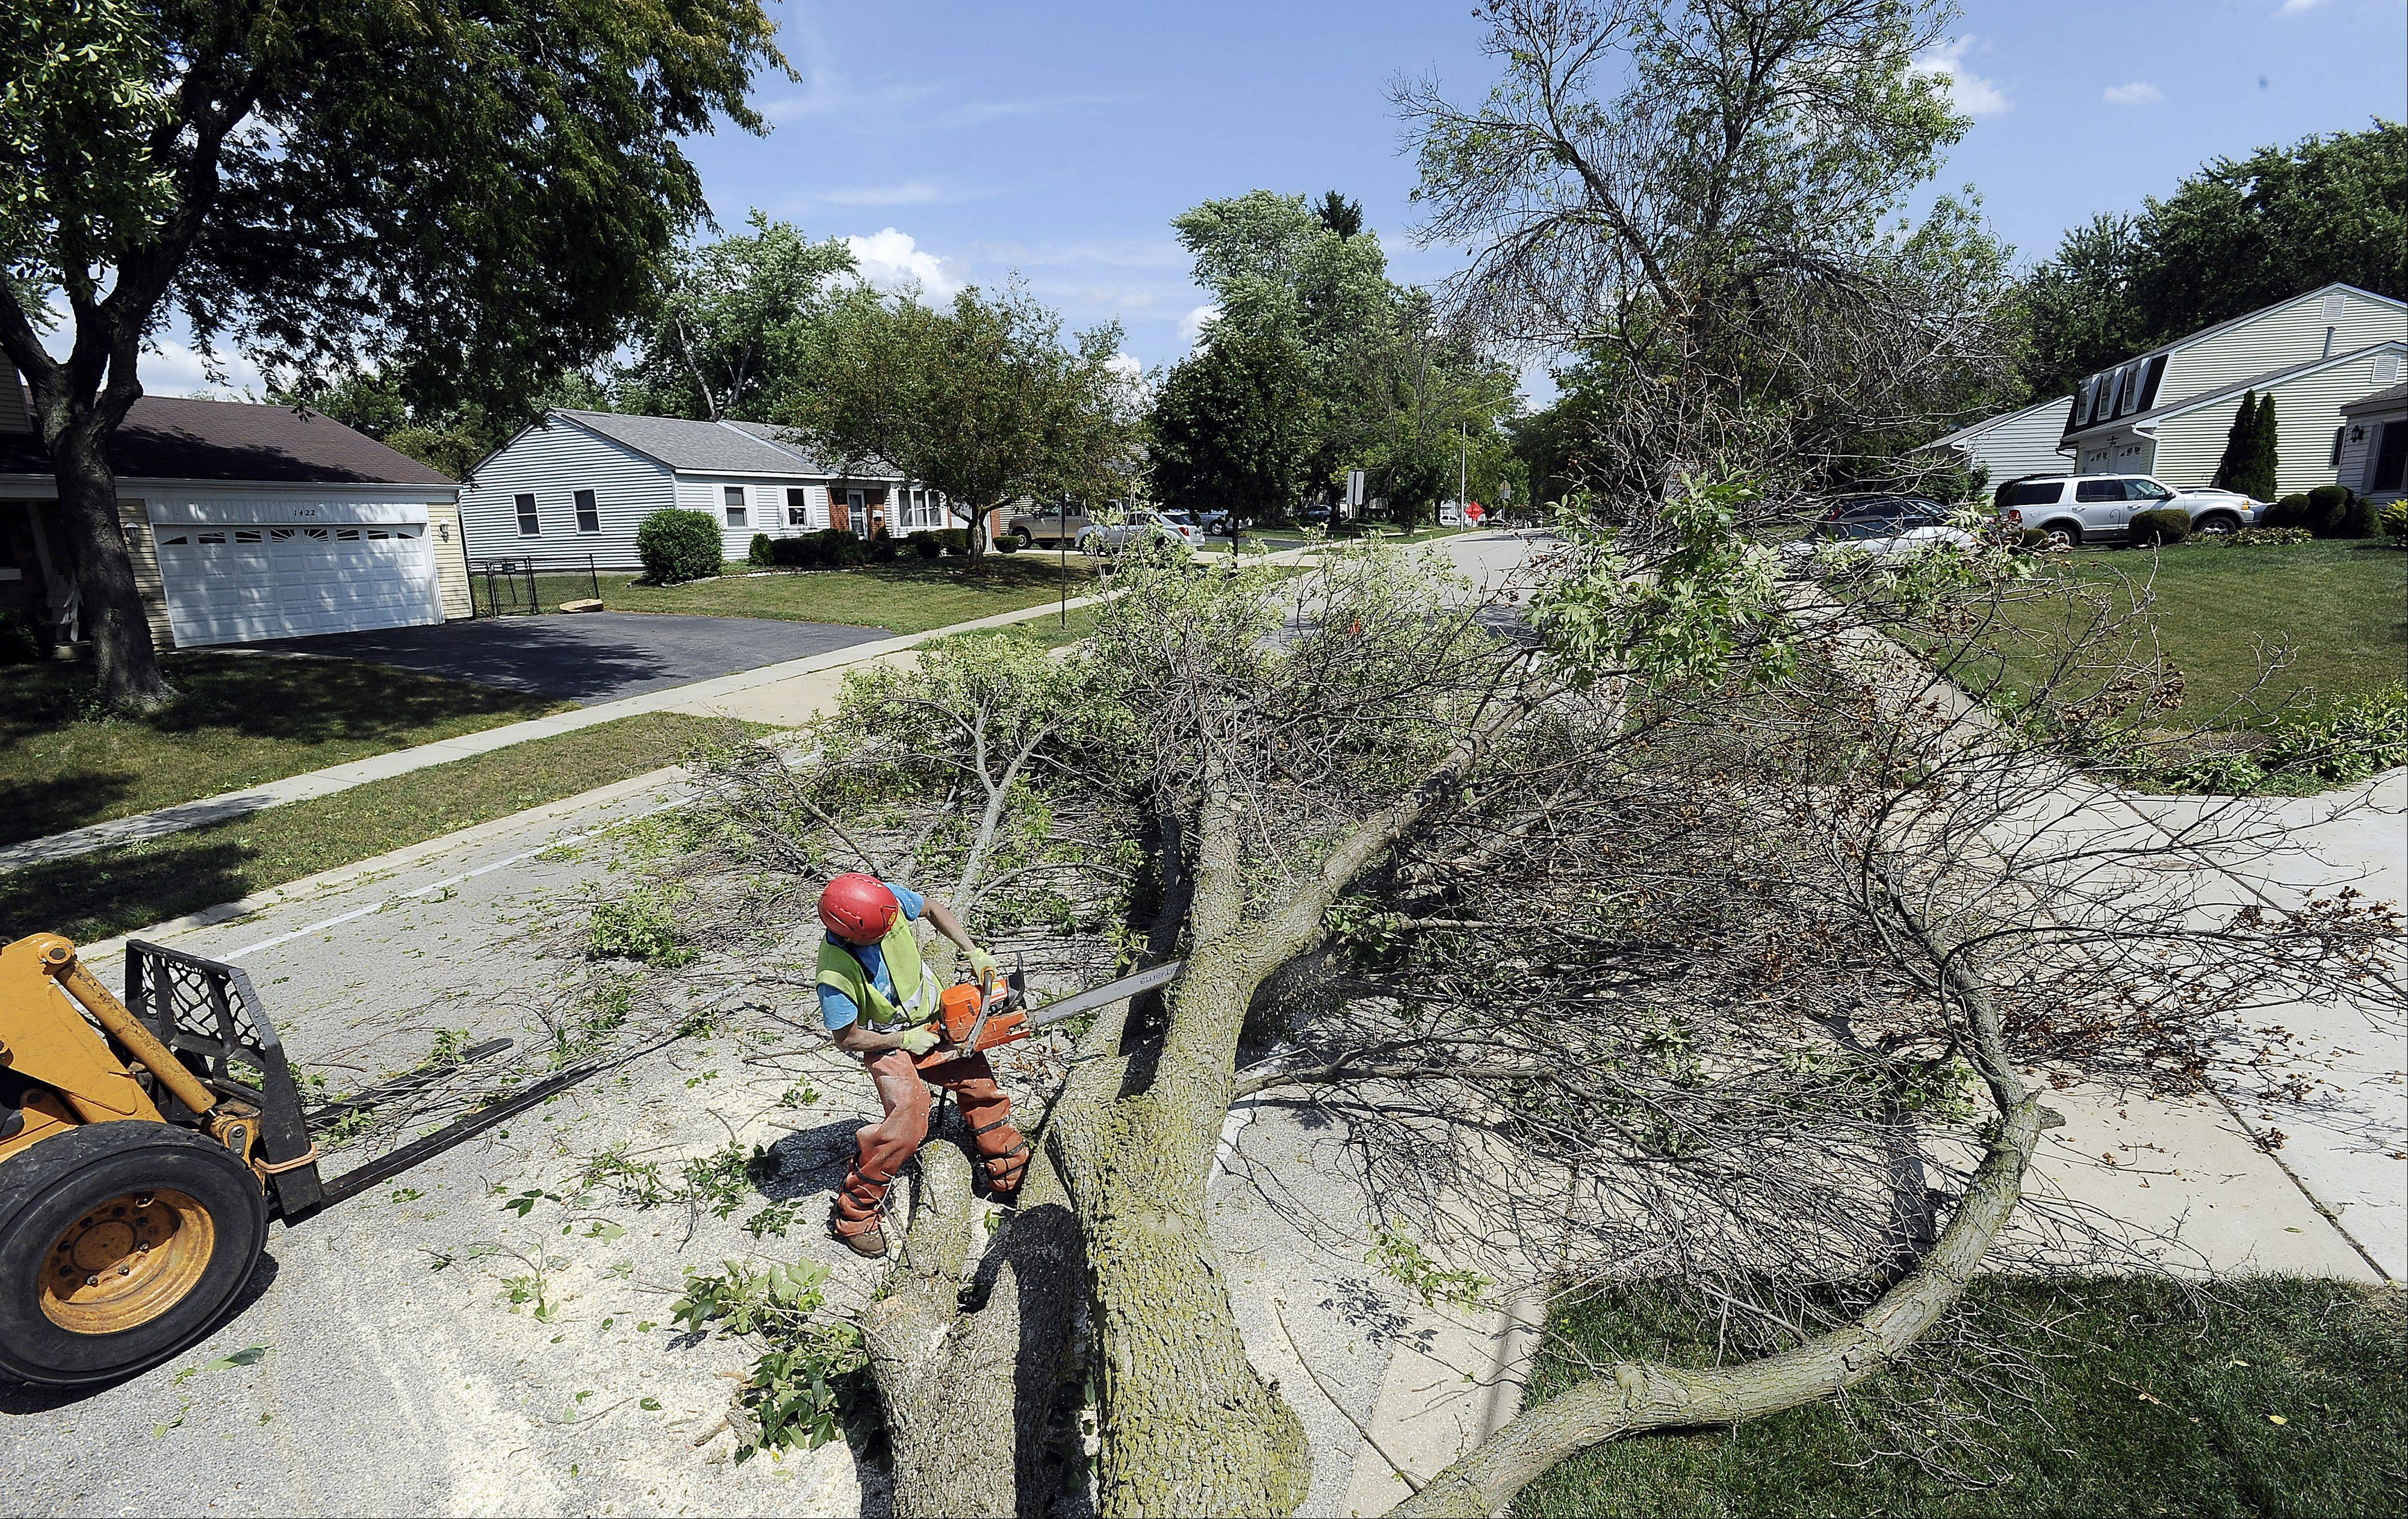 Rafael Alfaro of LandScapes Concepts of Grayslake cuts up an ash tree located on Colwyn Drive in Schaumburg after workers pushed it over with a tractor. More than 1,500 trees are slated for the chopping block in Schaumburg.